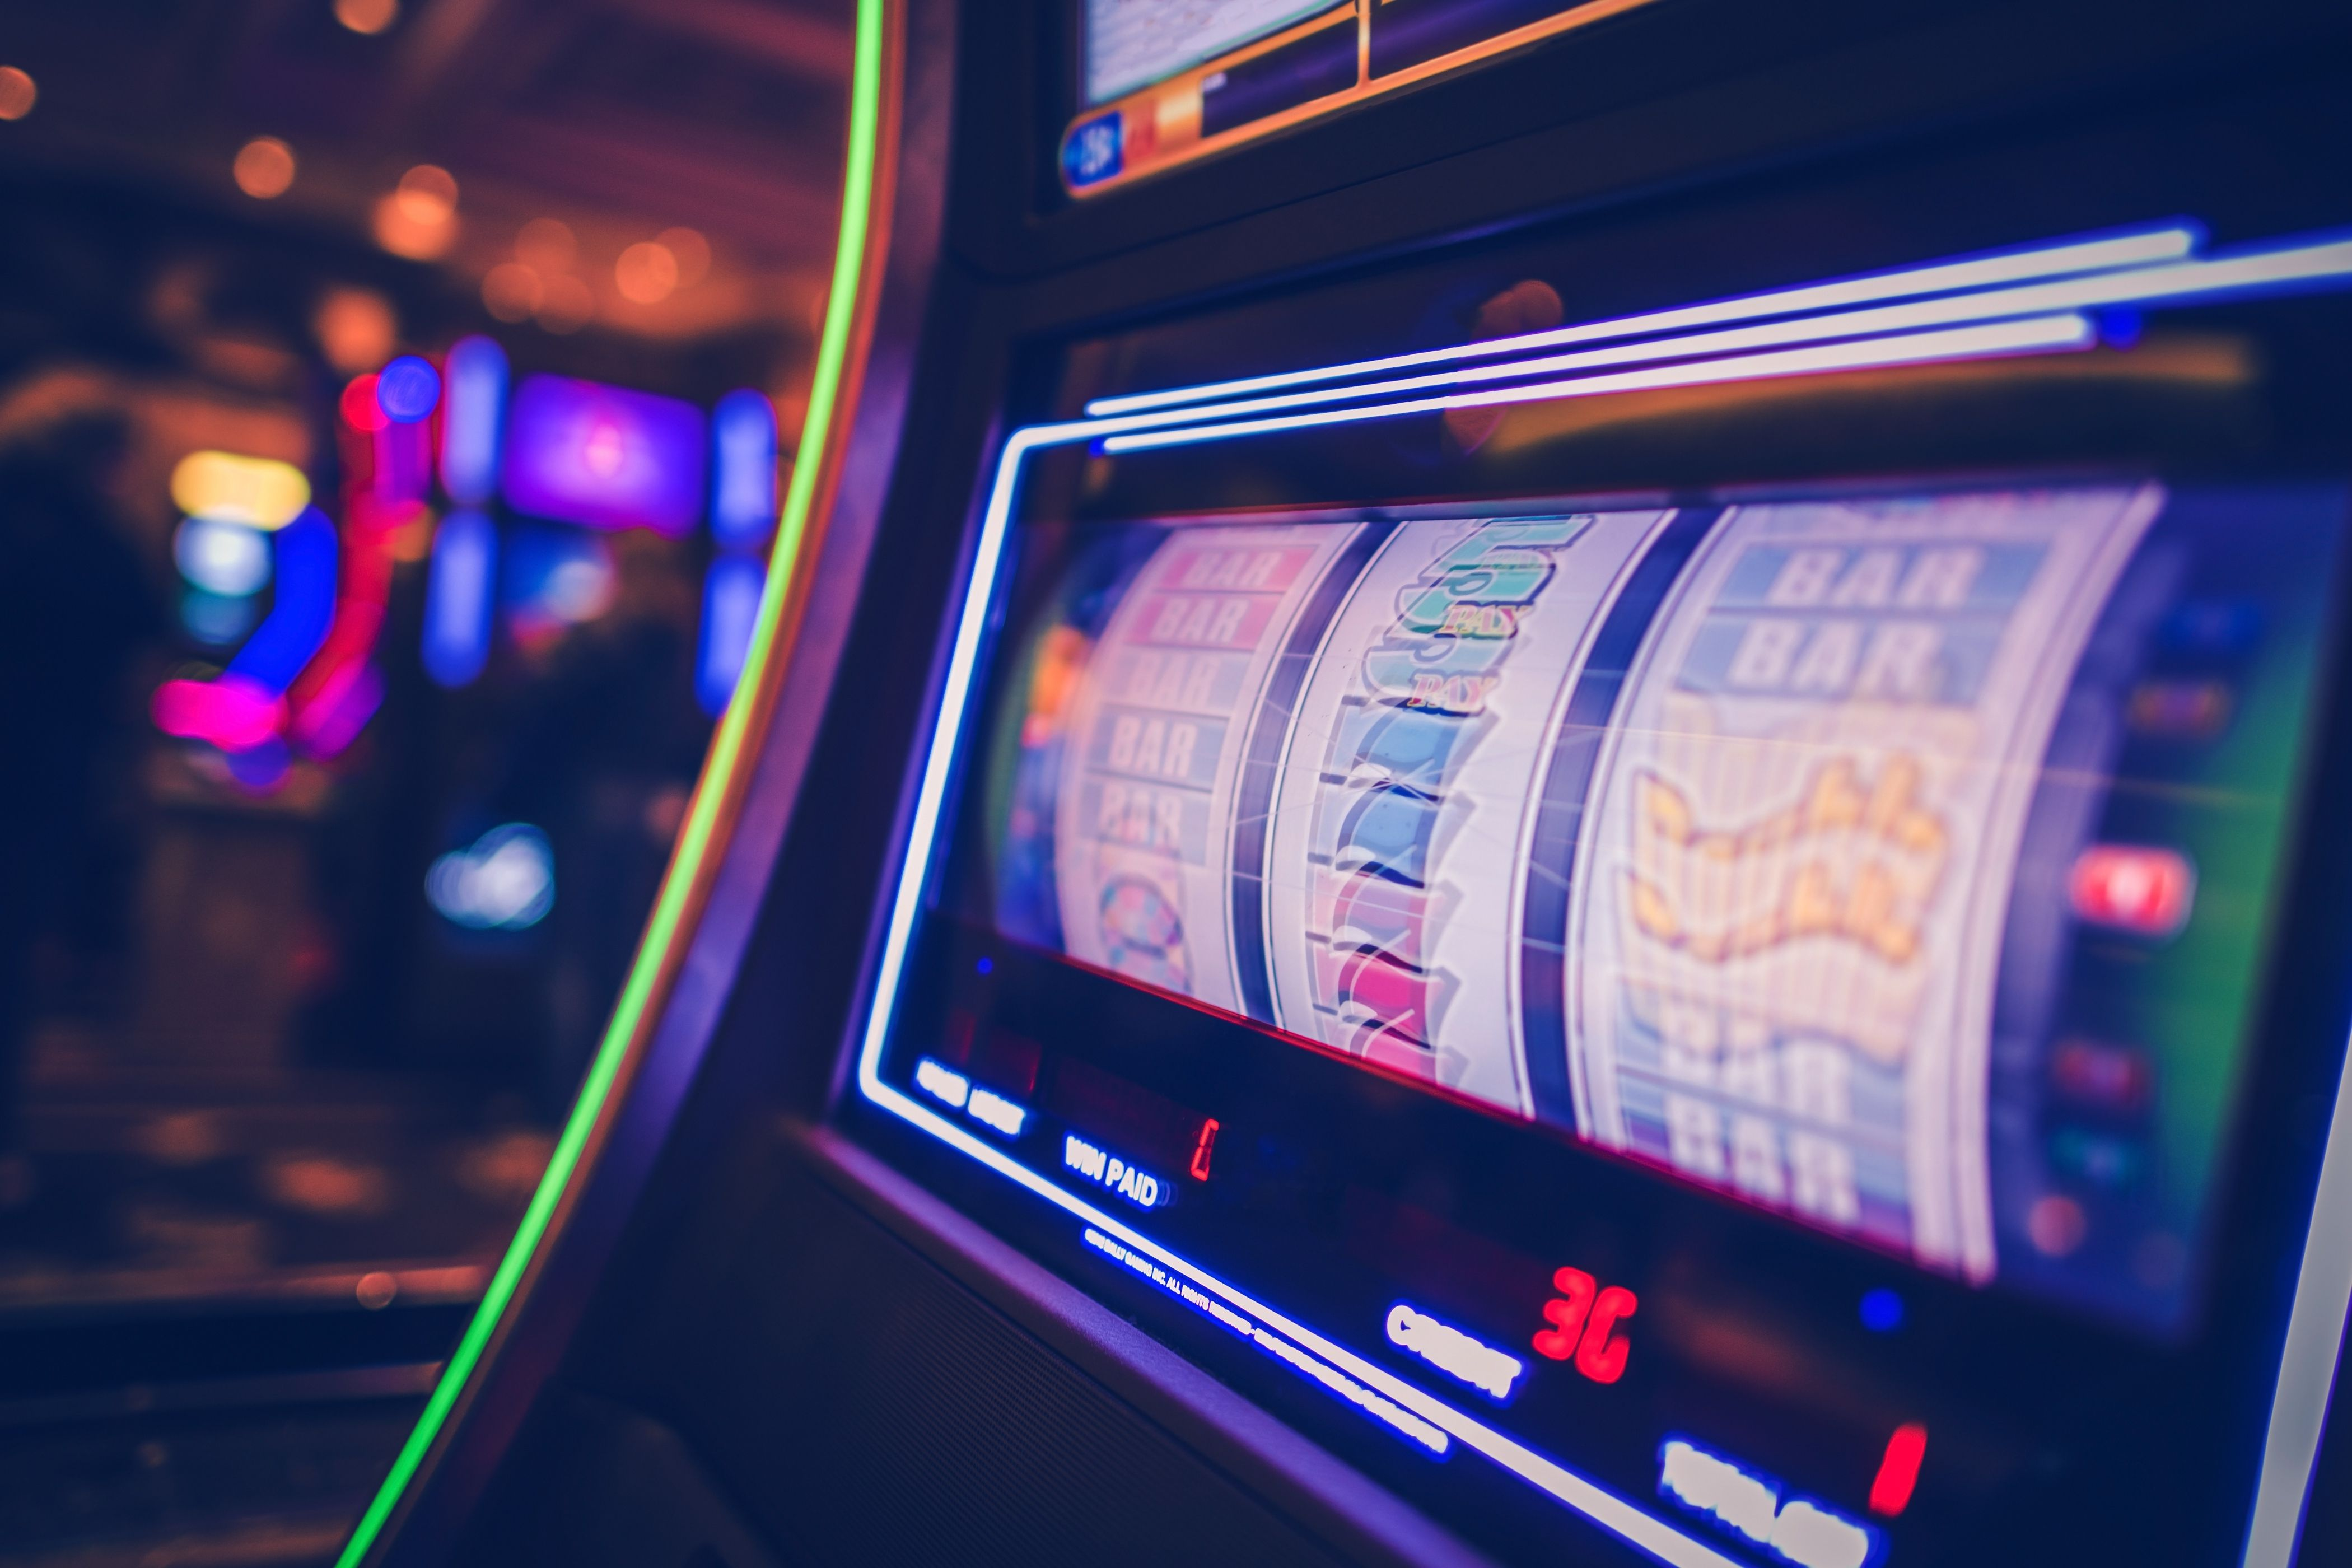 Real slot machine for home use over $300